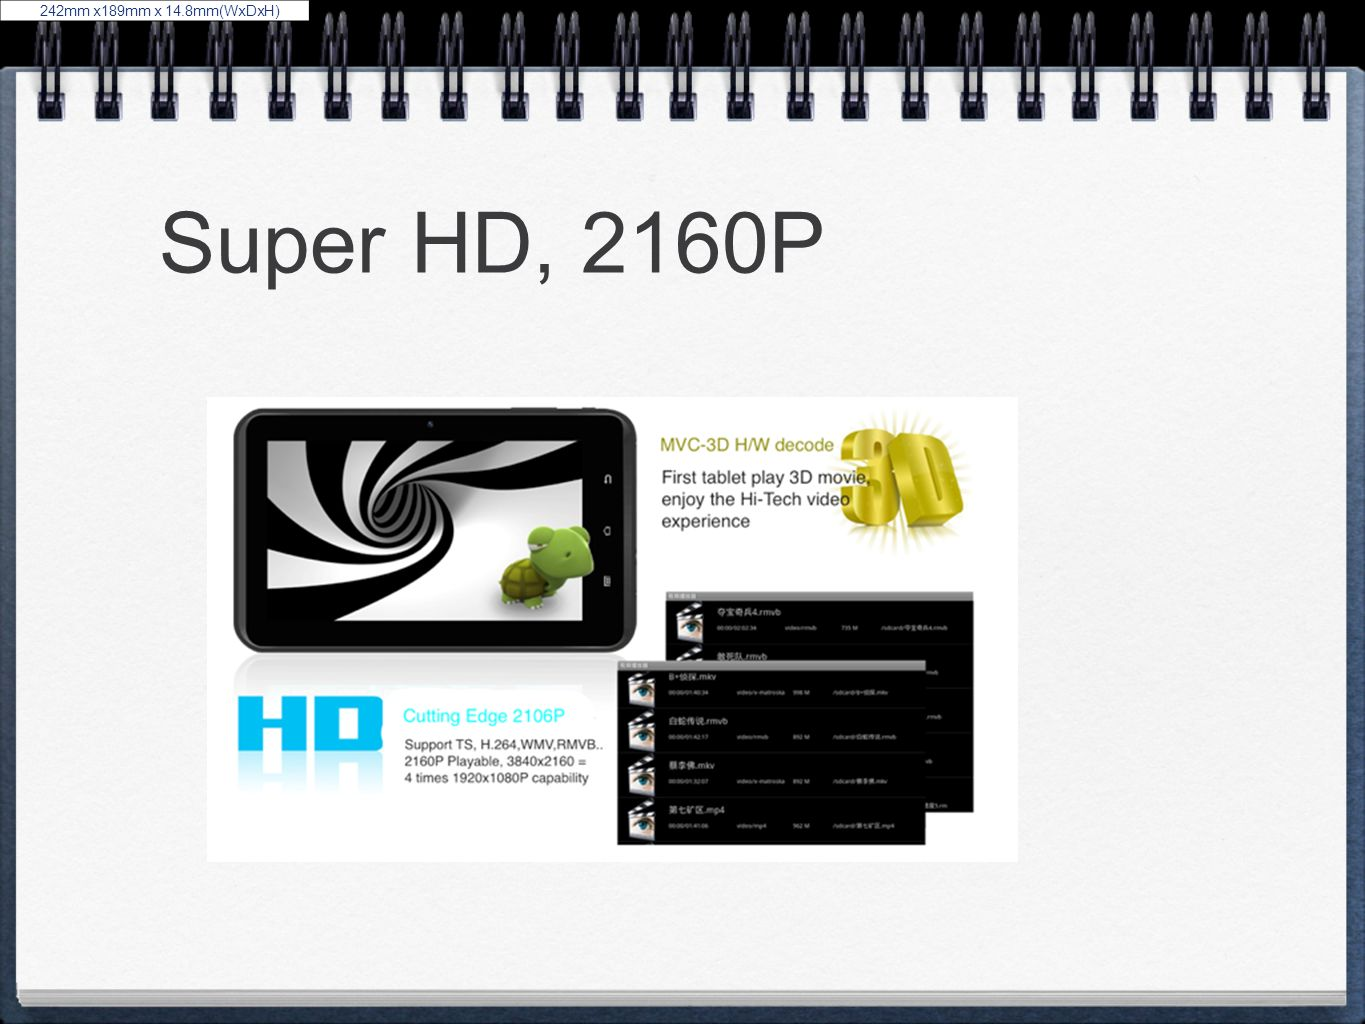 Super HD, 2160P 242mm x189mm x 14.8mm(WxDxH)